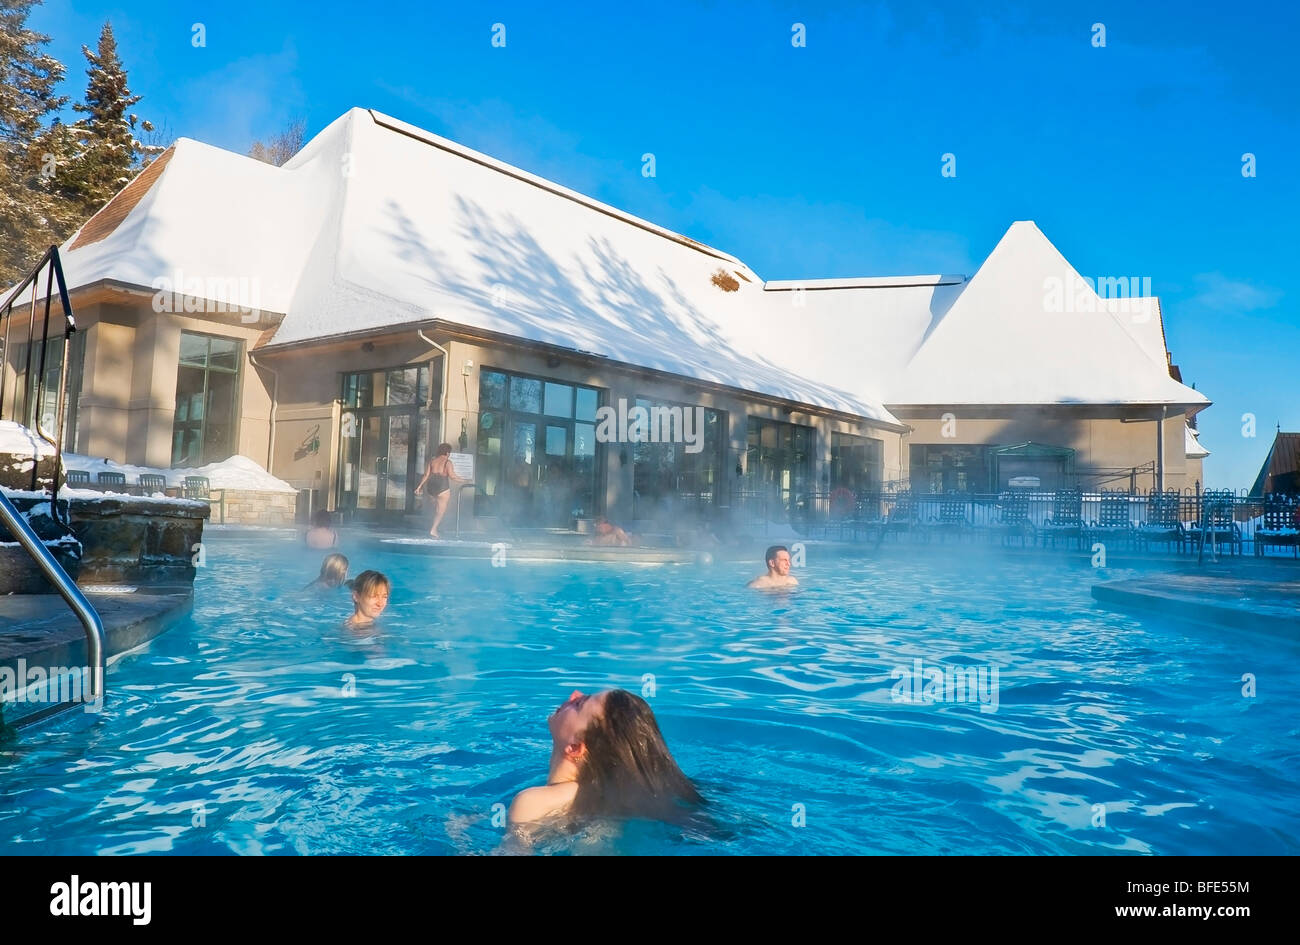 People Bathing In A Heated Swimming Pool In Winter At Fairmont Manoir  Richelieu Hotel, La Malbaie, Charlevoix, Quebec, Canada